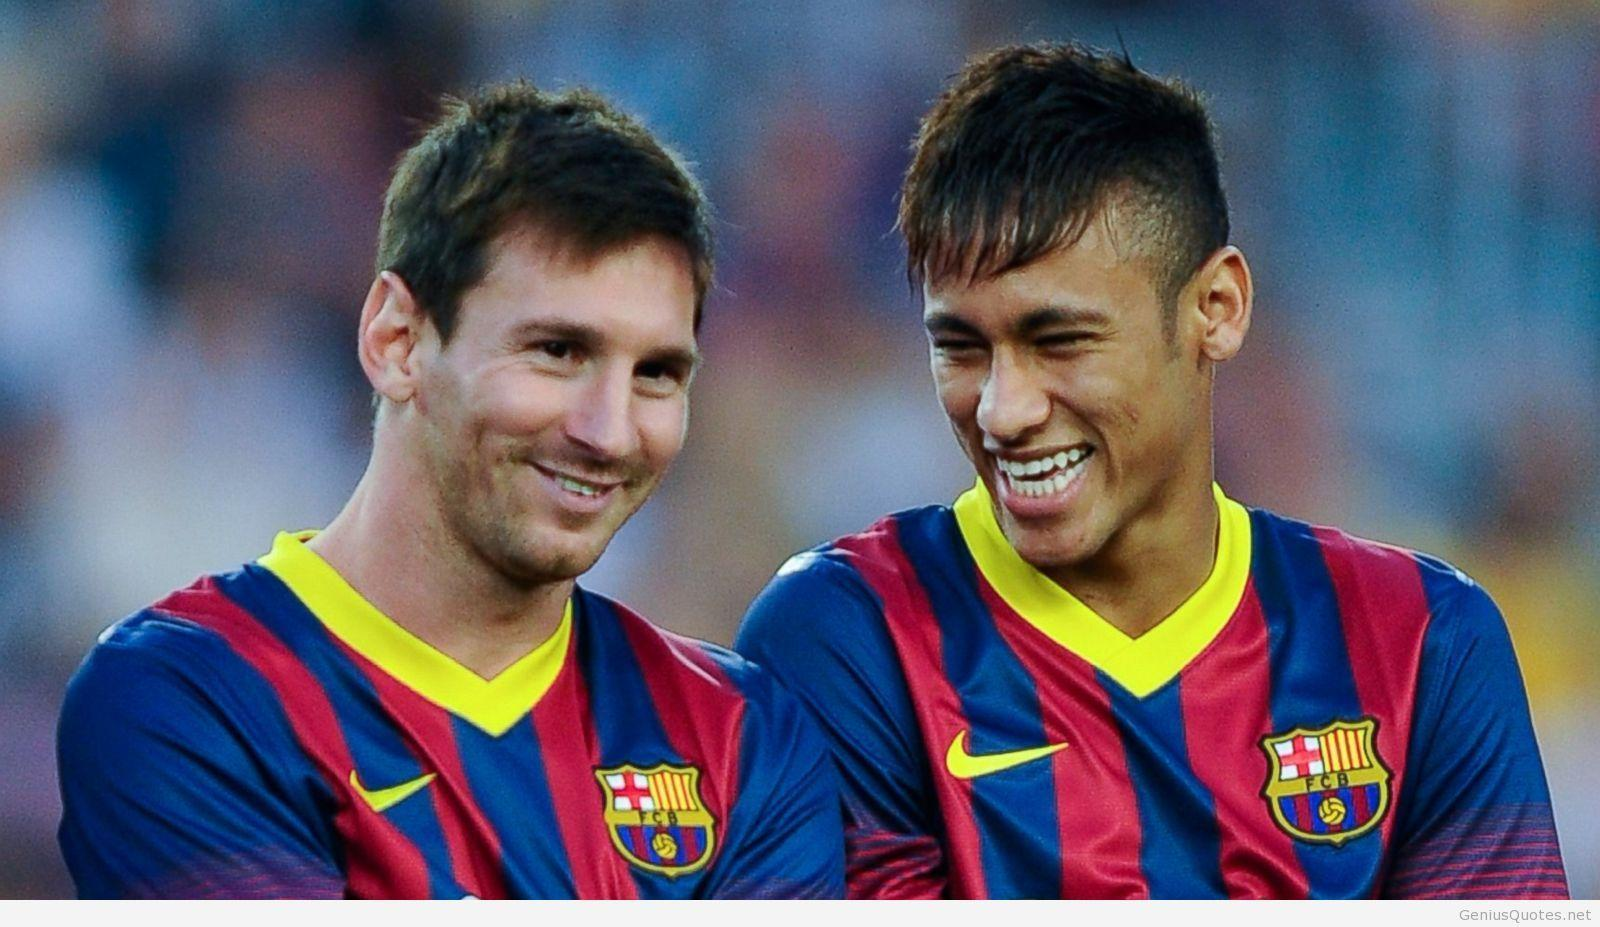 Neymar & Messi Wallpapers - Wallpaper Cave